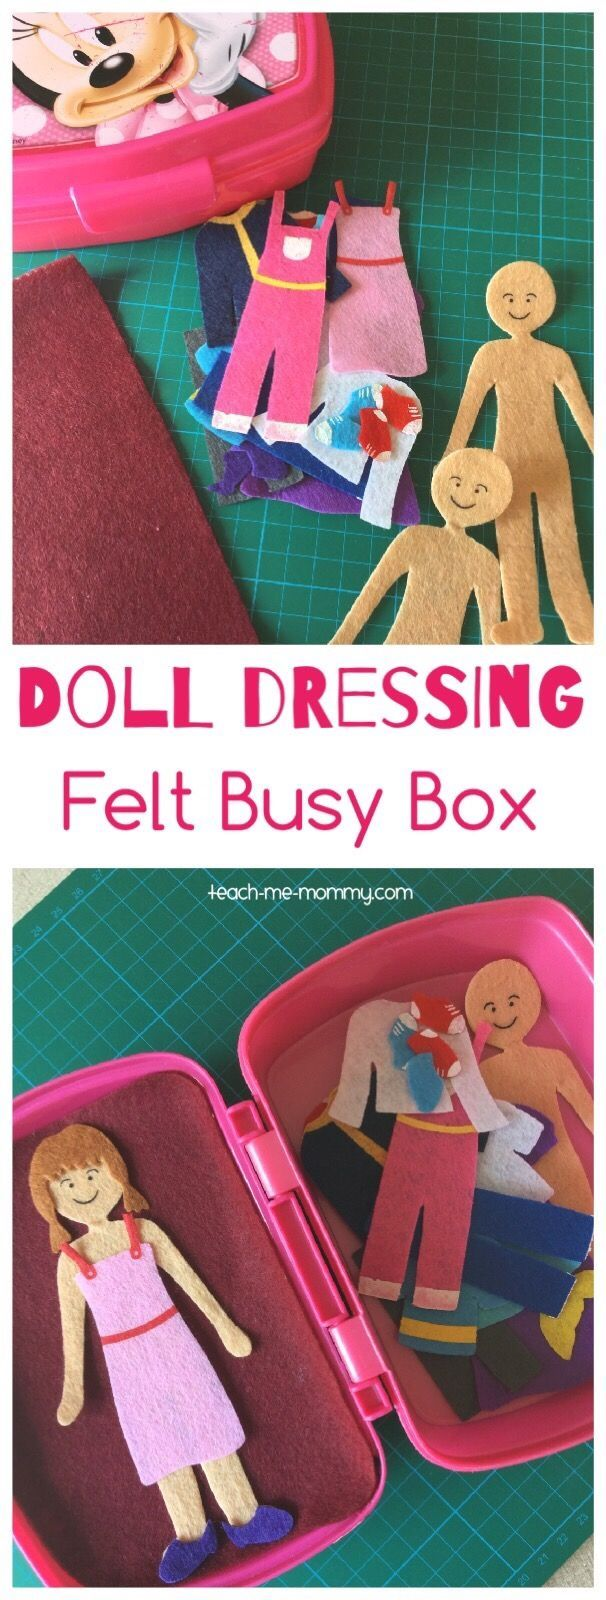 Doll Dressing Felt Busy Box  // vestir a la muñecas de fieltro #game #diy #felt